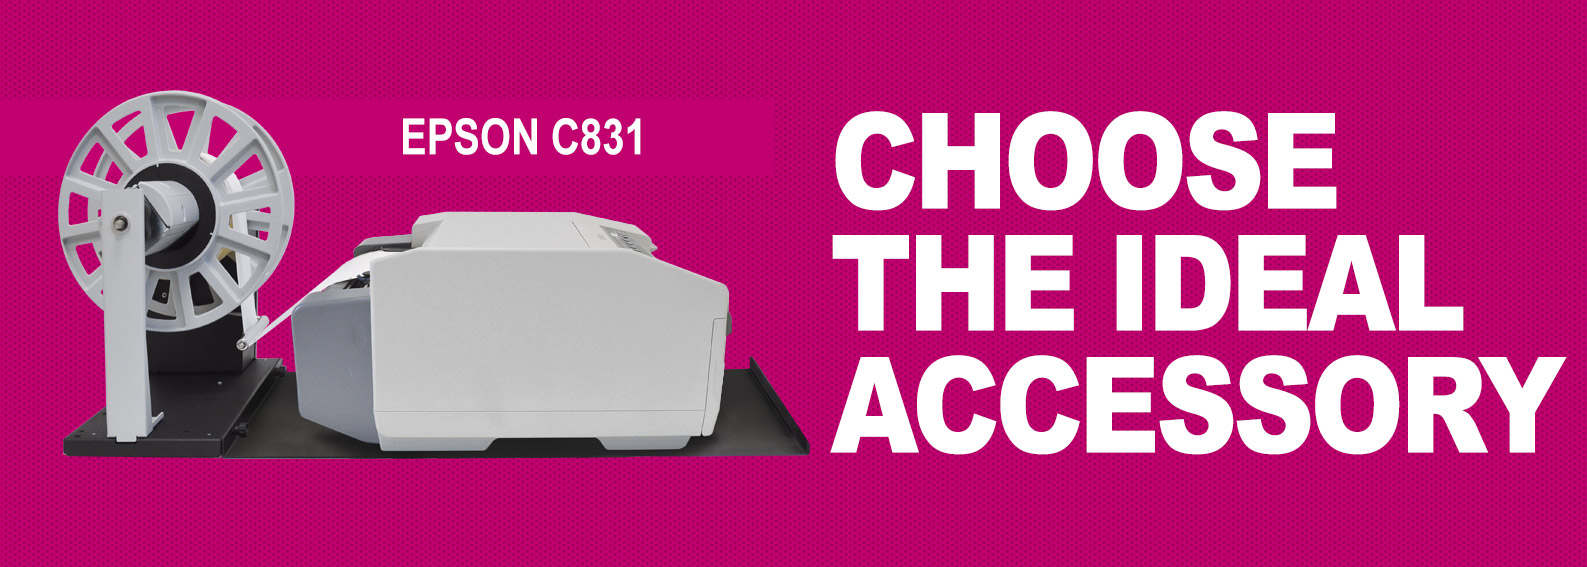 Accesories for Epson C831